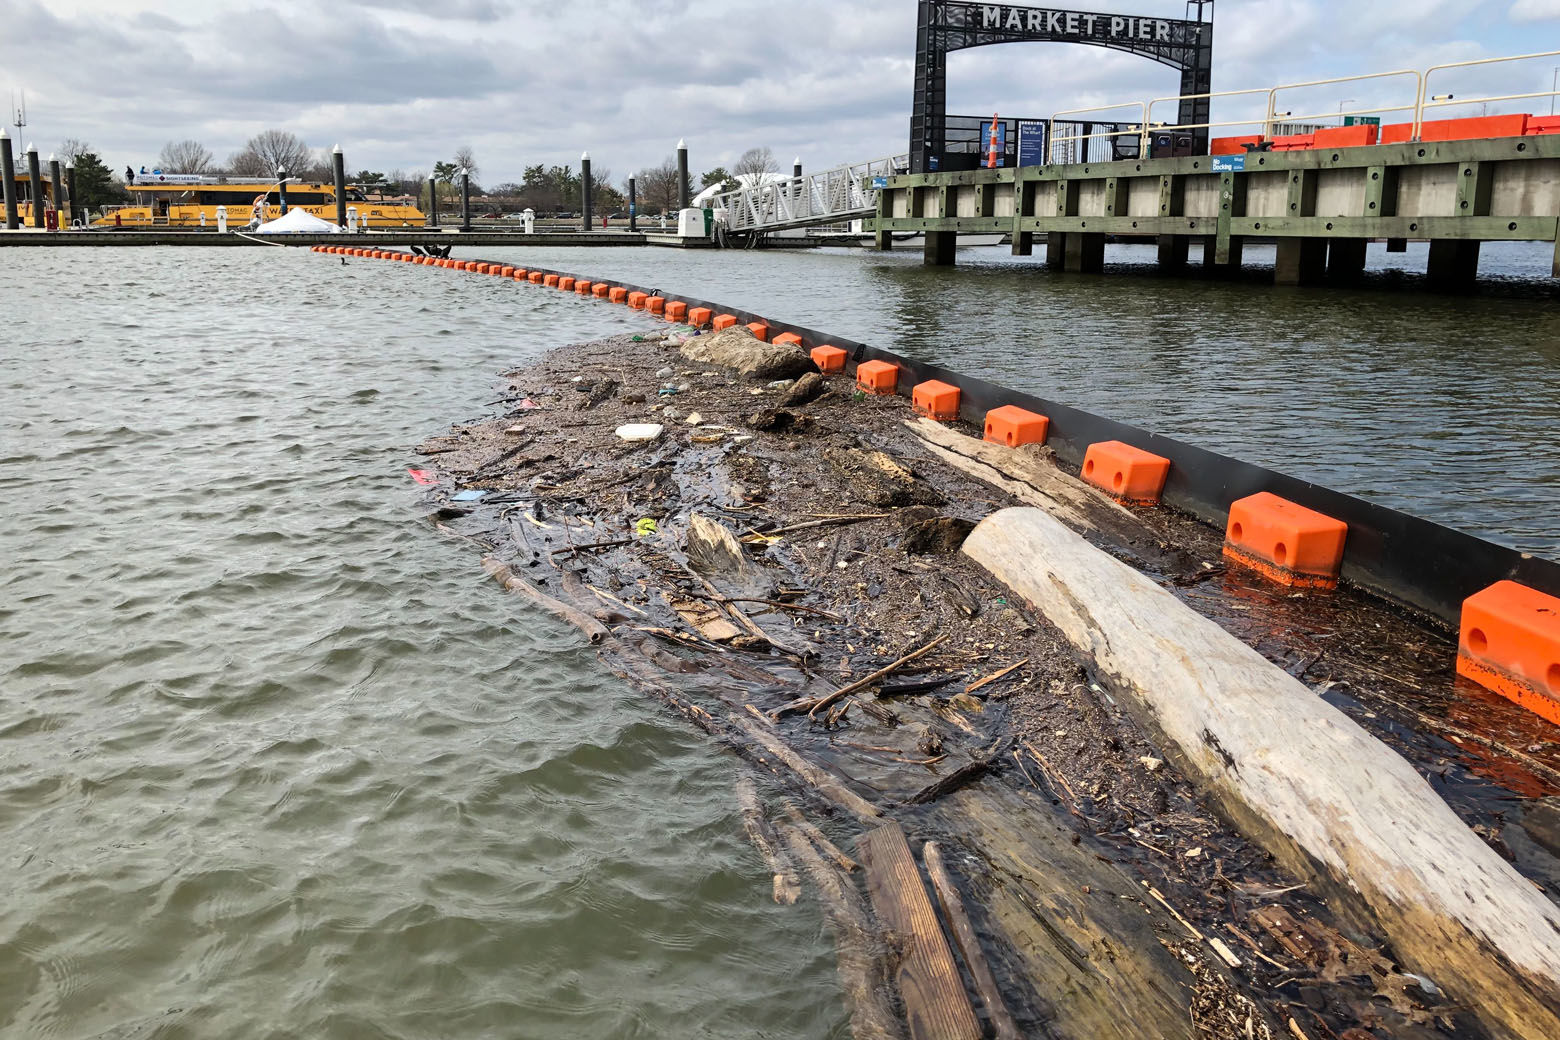 A year's worth of record rainfall has helped push generous amounts of trash, debris and wood of various sizes downstream and into area waterways. (WTOP/Kristi King)